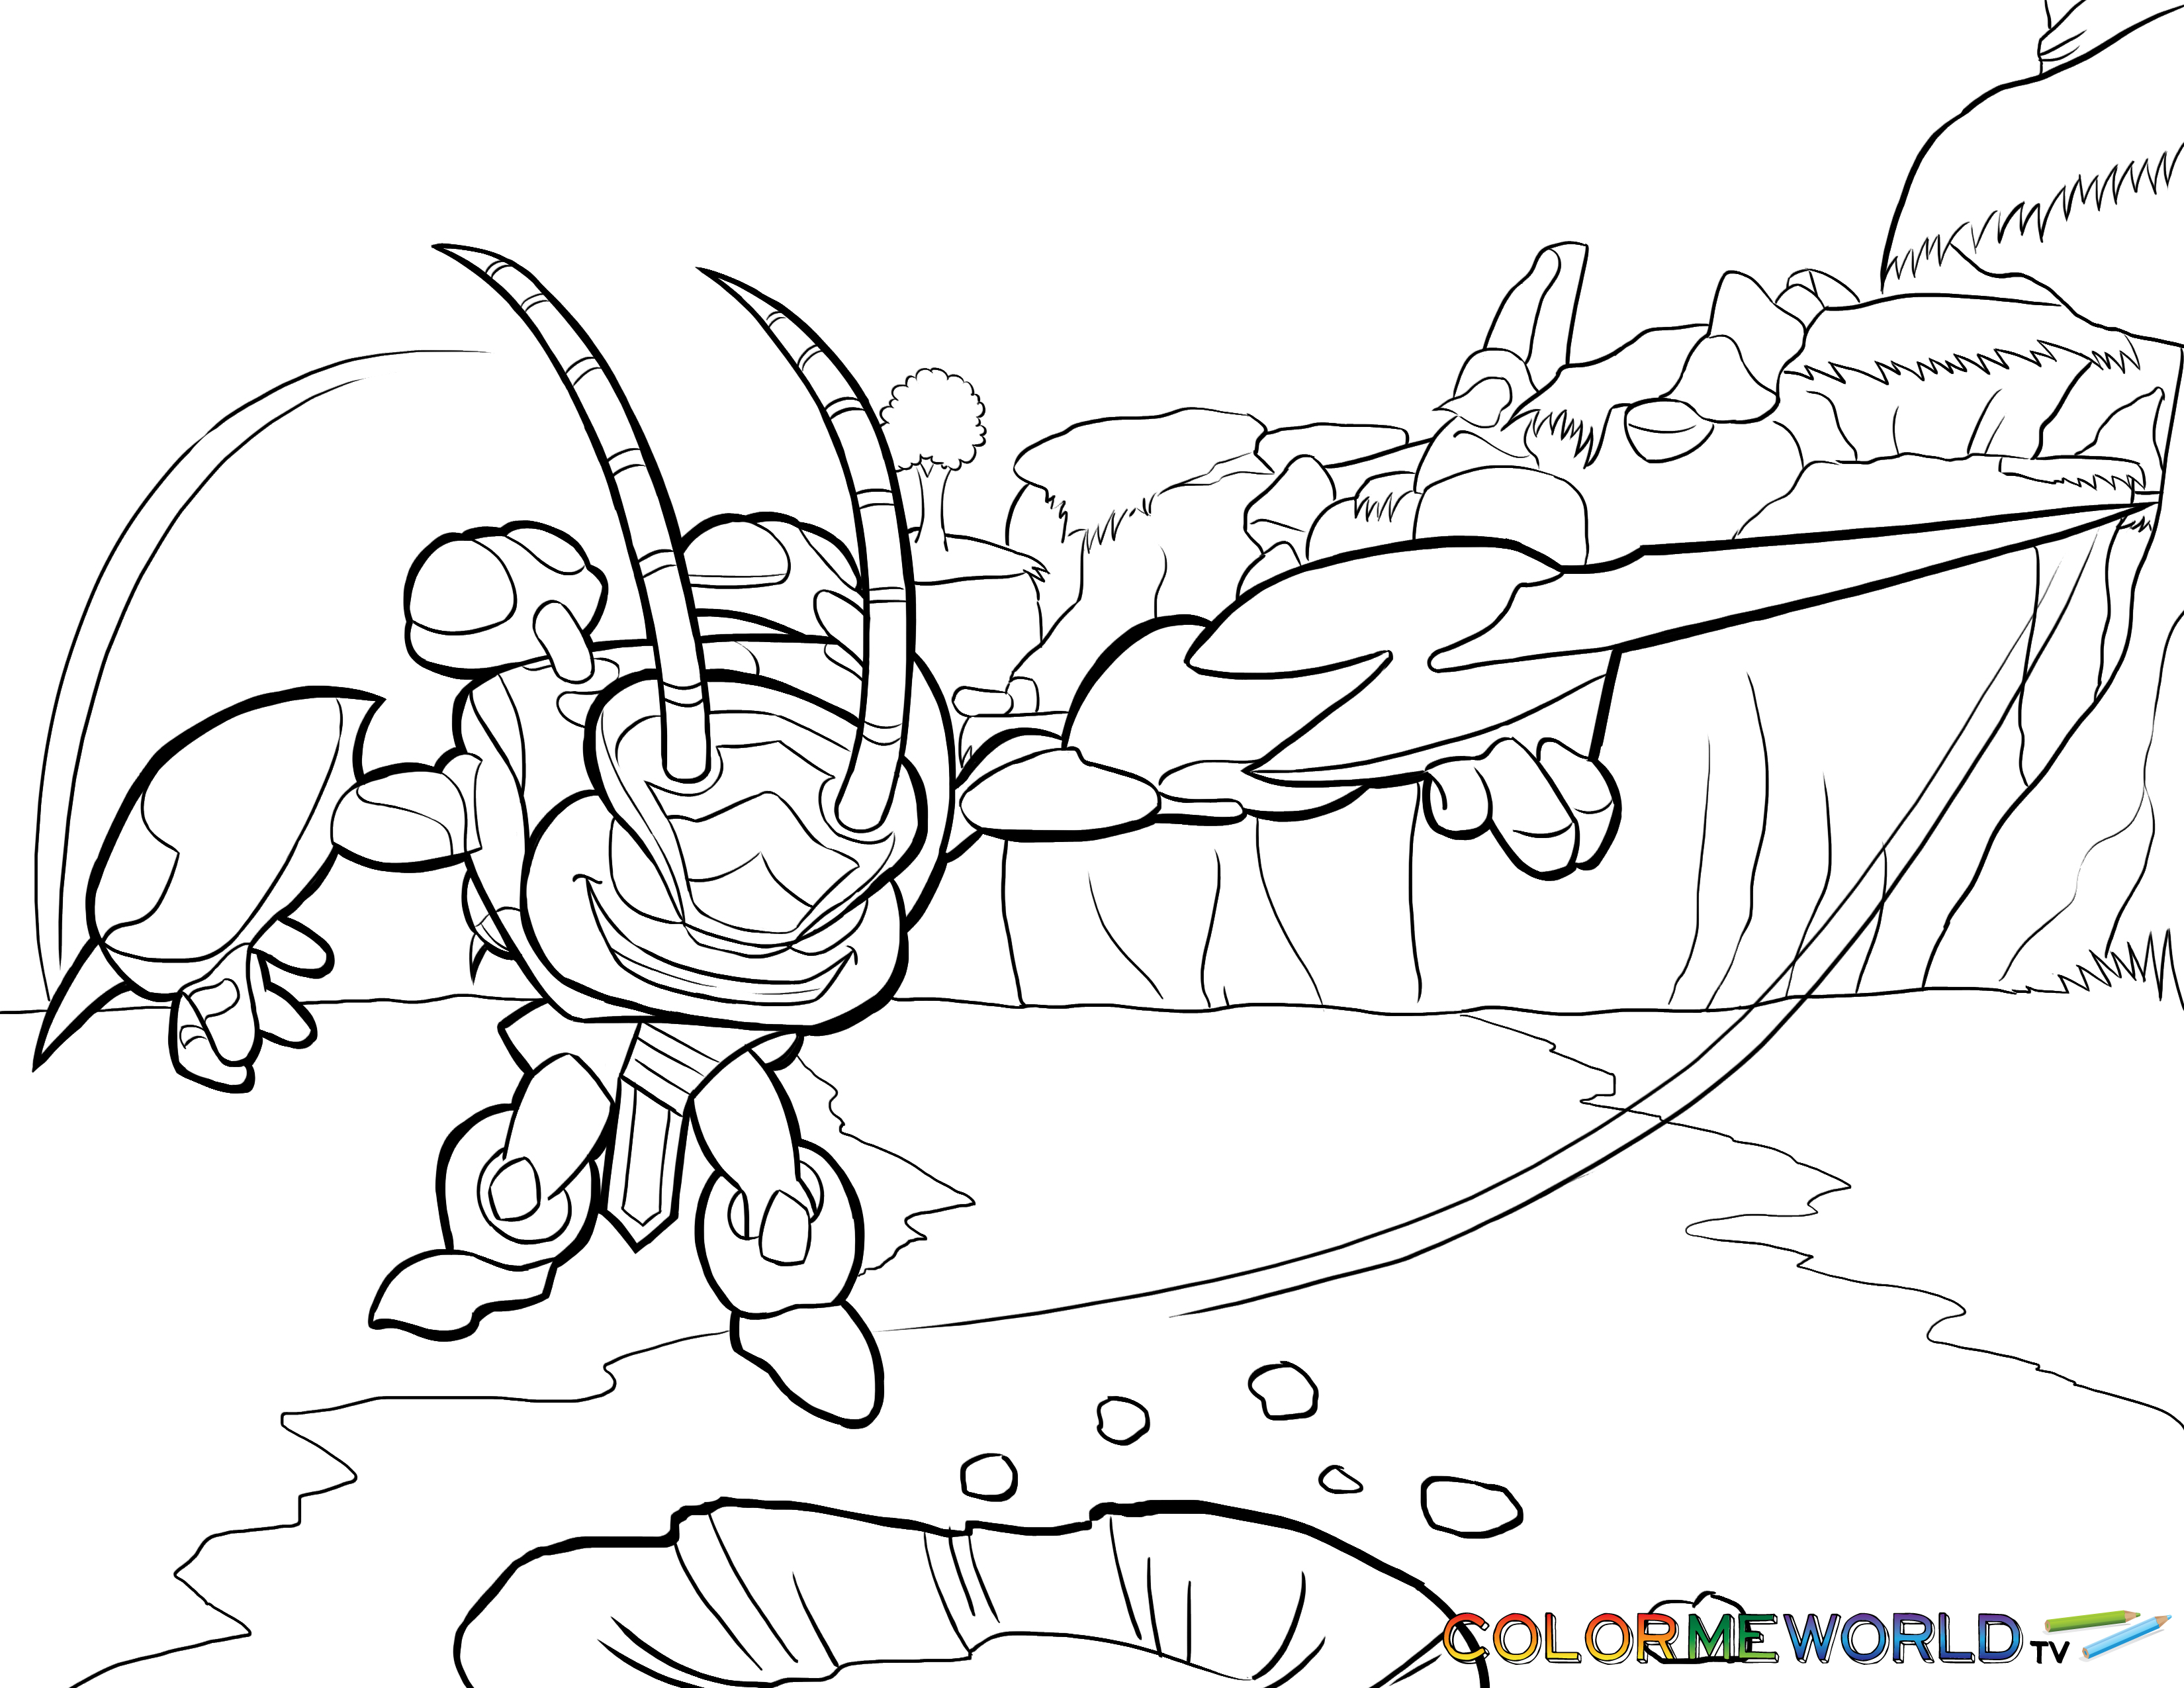 Skylanders coloring pages for boys ~ Swarm Coloring Page | Skylander's Coloring Pages ...